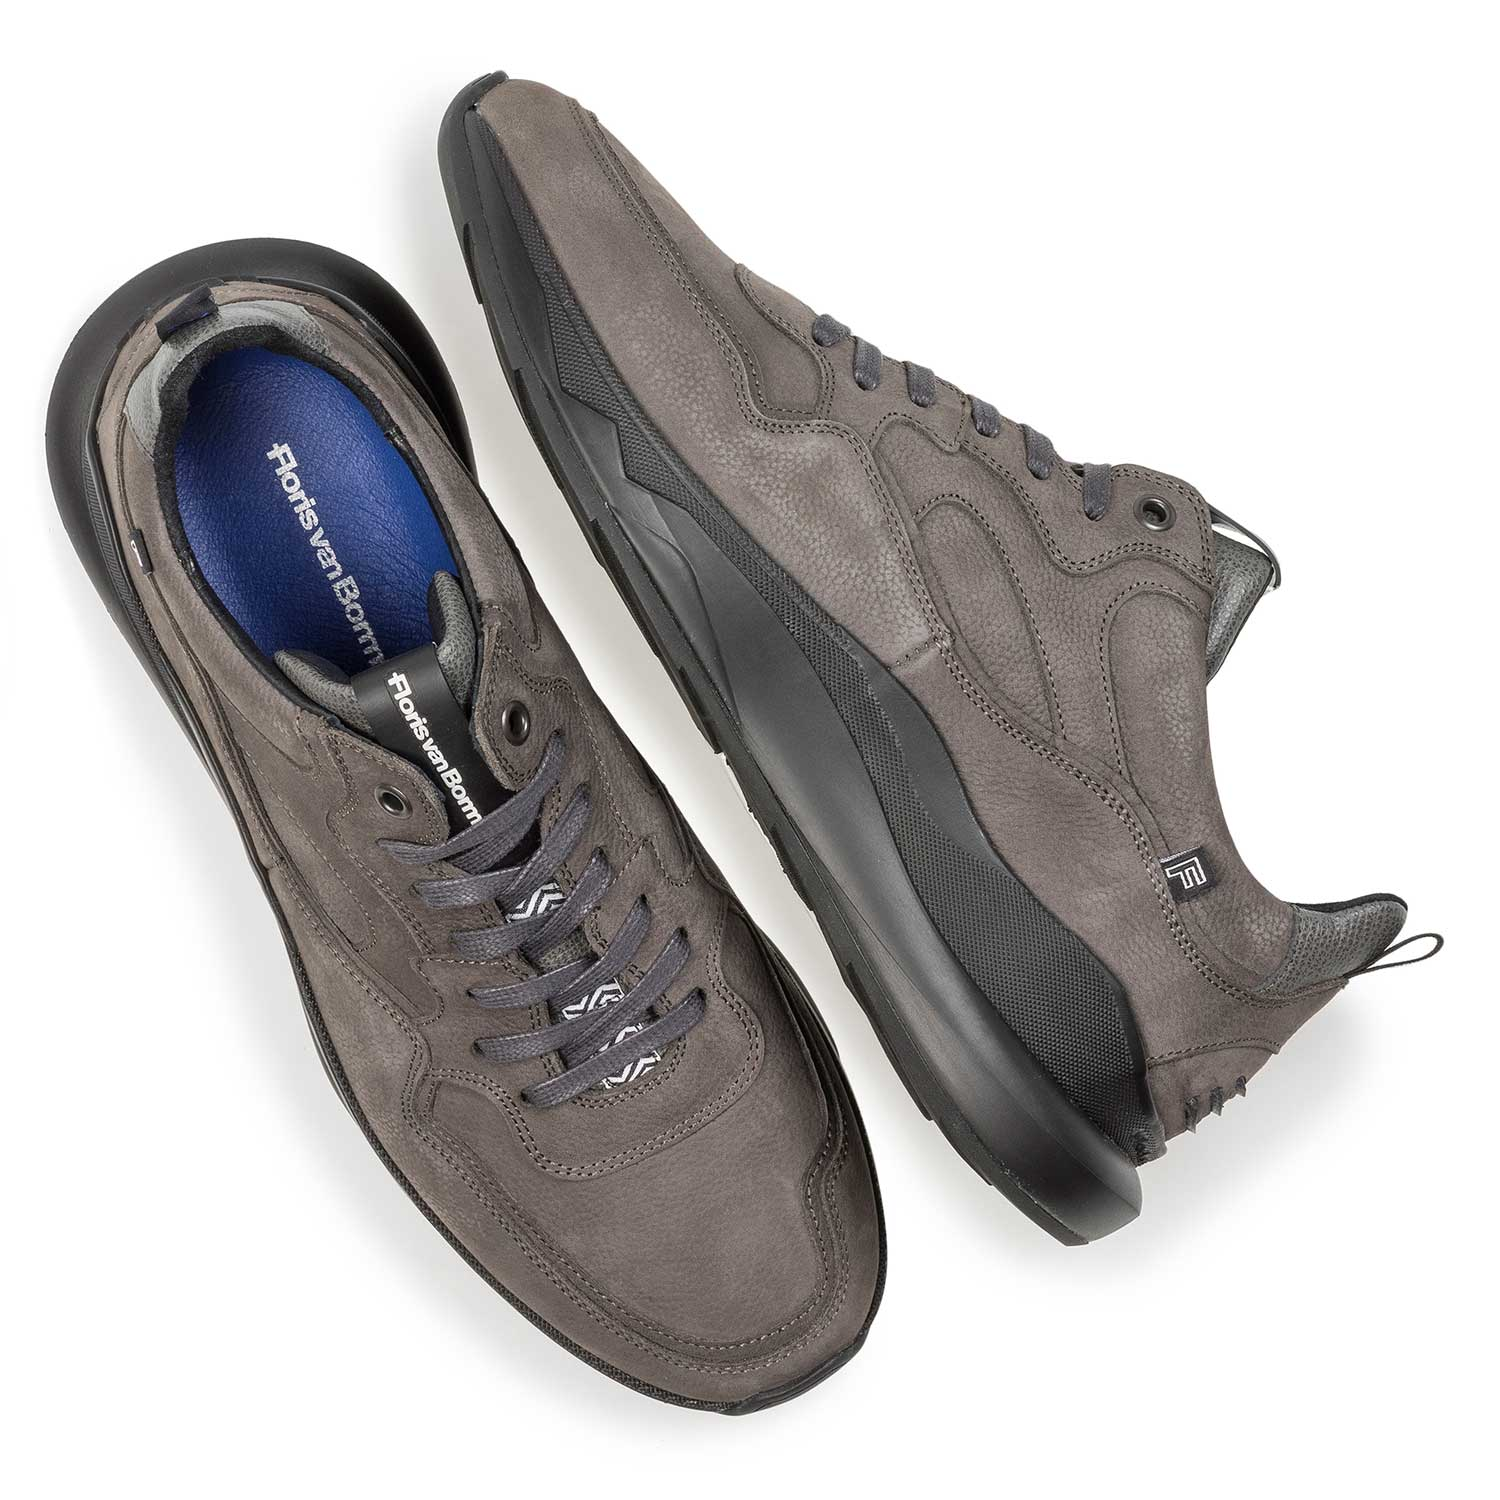 16269/05 - Dark grey nubuck leather sneaker